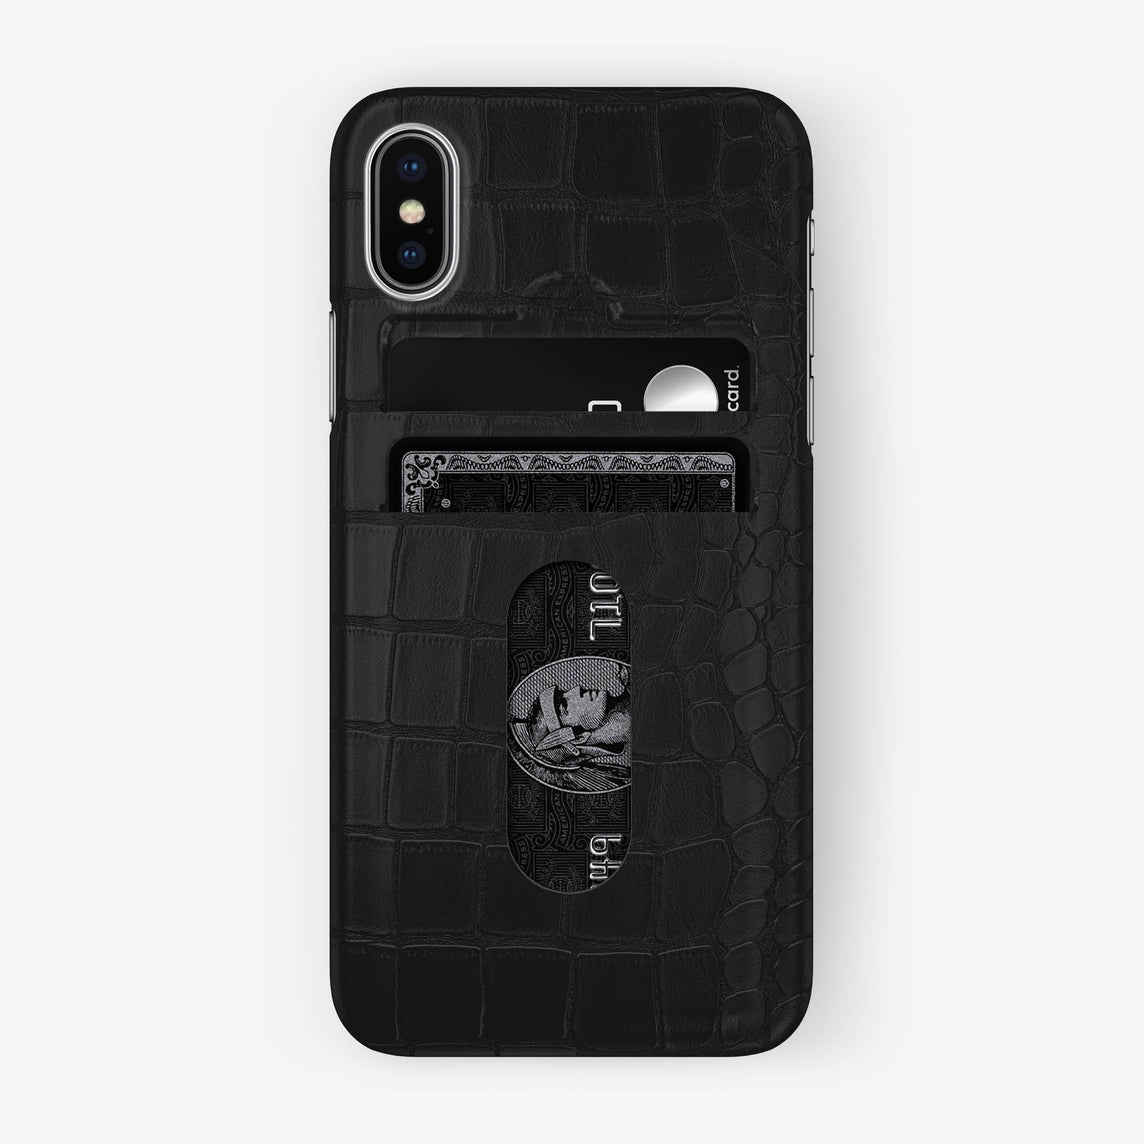 Alligator Card Holder Case iPhone X/Xs | Phantom Black - Stainless Steel - Hadoro